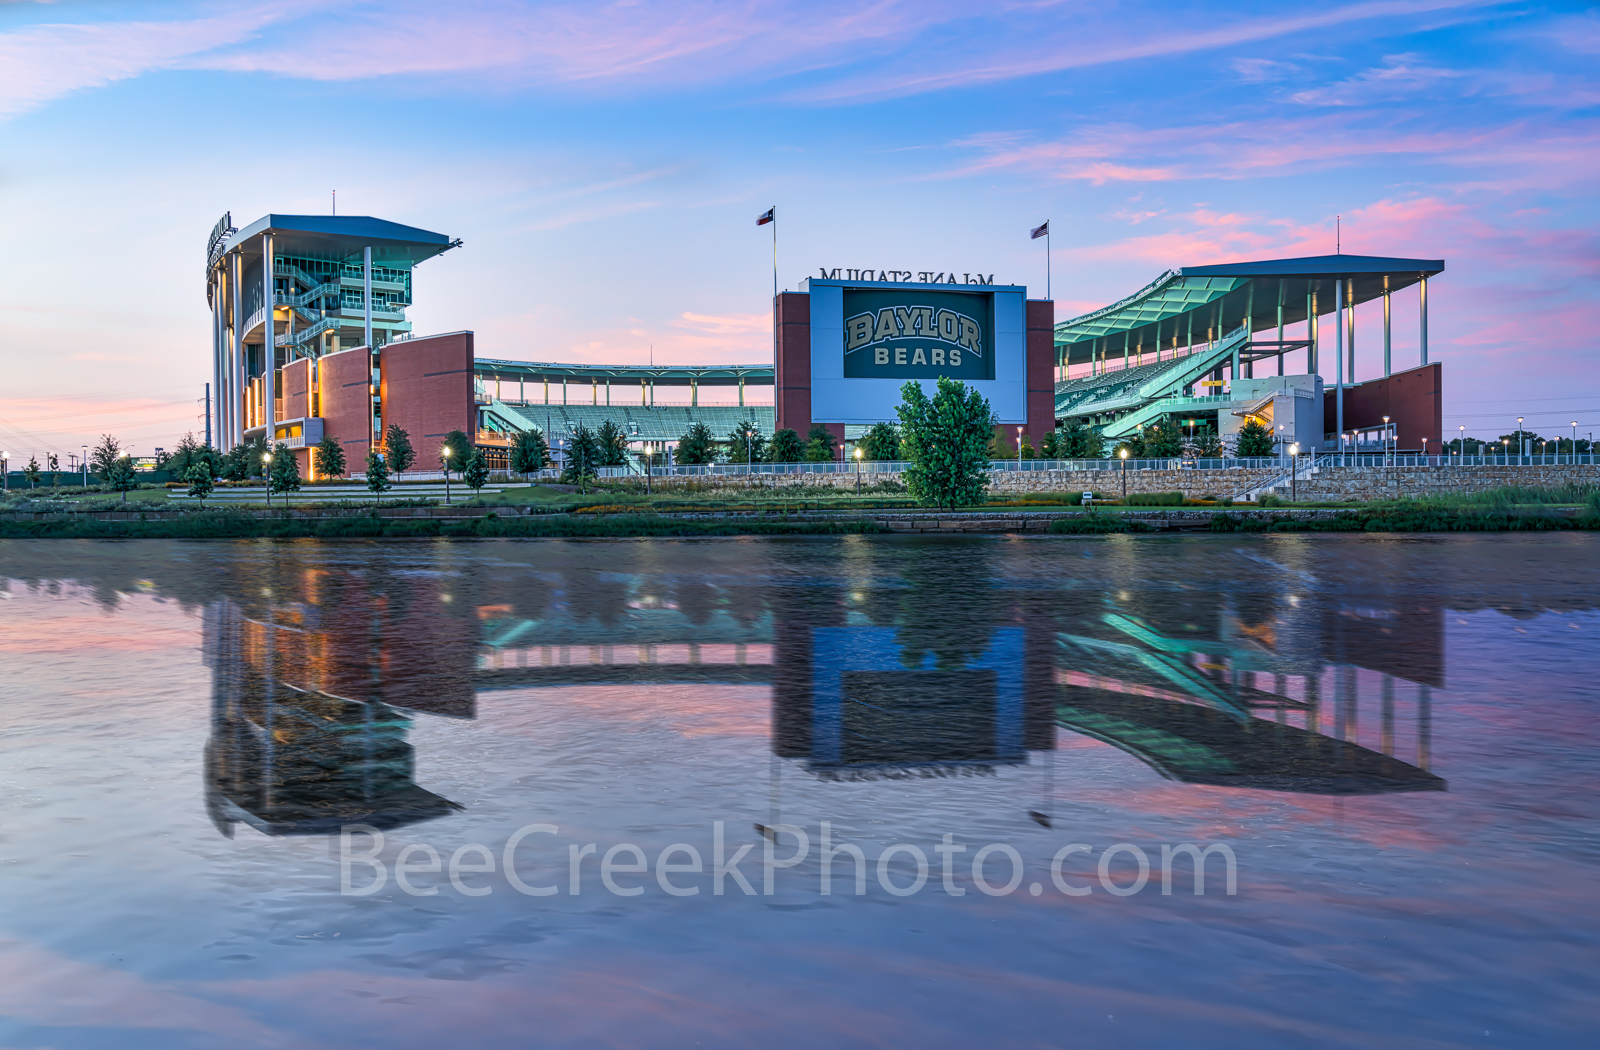 Waco McLane Stadium Dusk, Waco, McLane Stadium, Baylor University, dusk, blue hour, Baylor Bears,  stadium , University of Baylor, school, campus, Brazos river, Jack Kultgen Freeway, civic leader, spo, photo